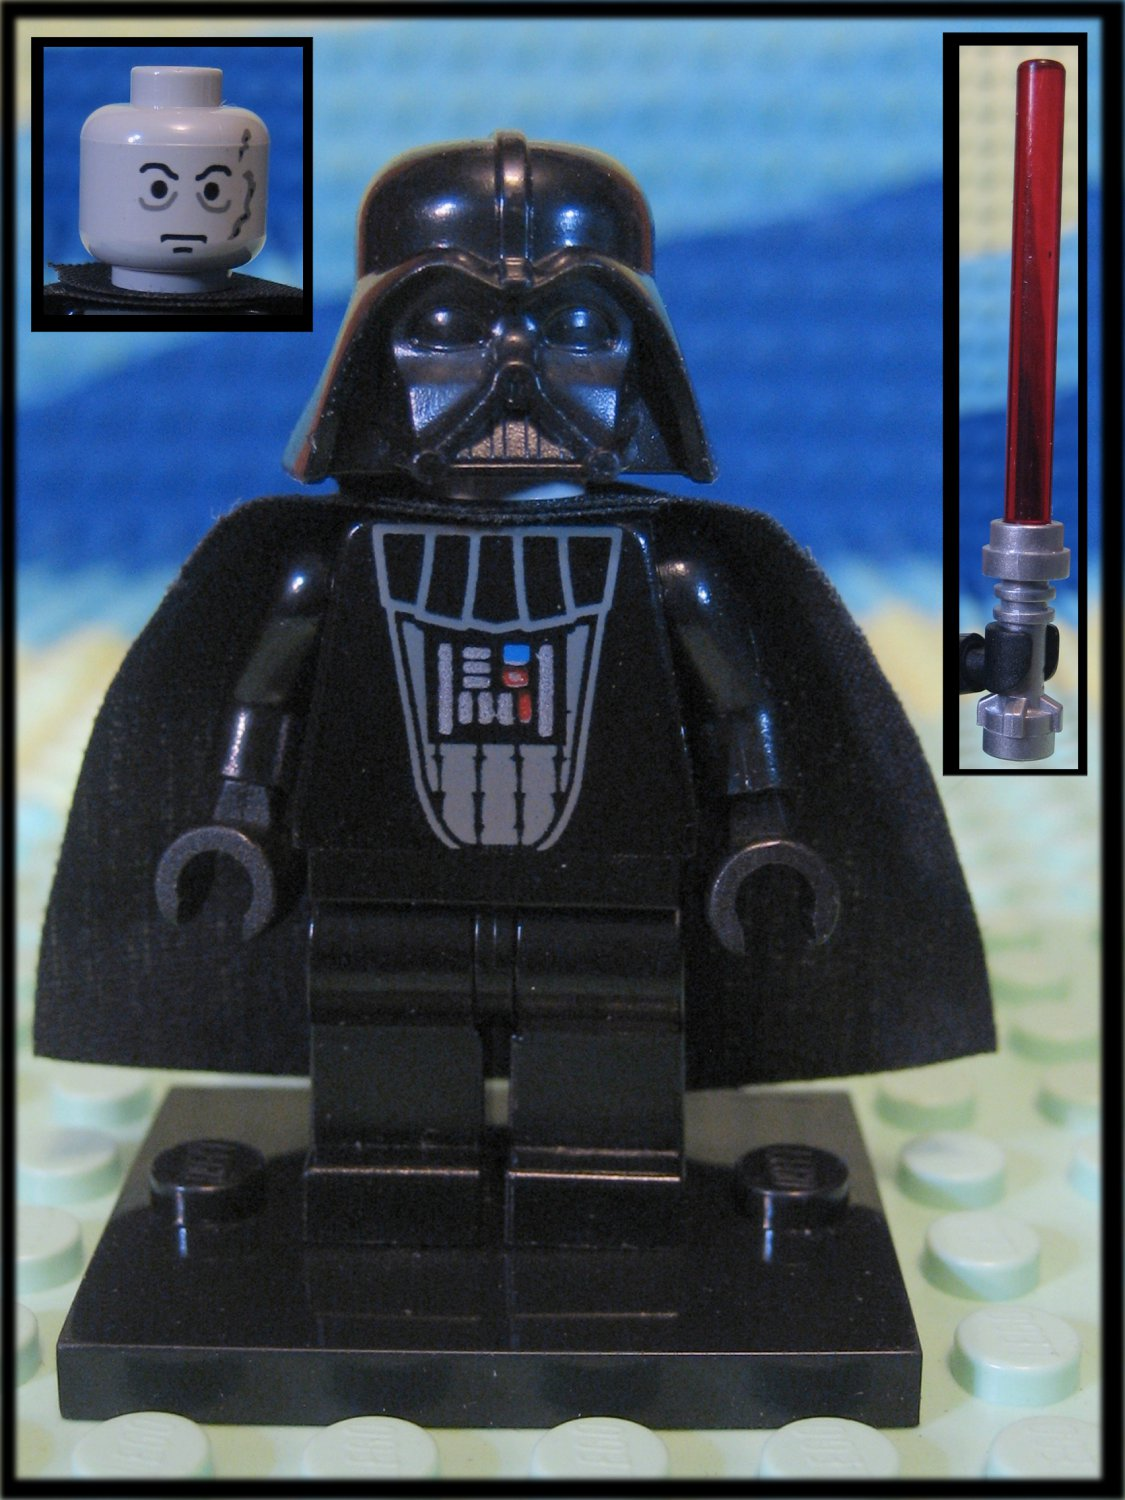 Genuine Authentic Star Wars Darth Vader Lego Minifigure + Lightsaber